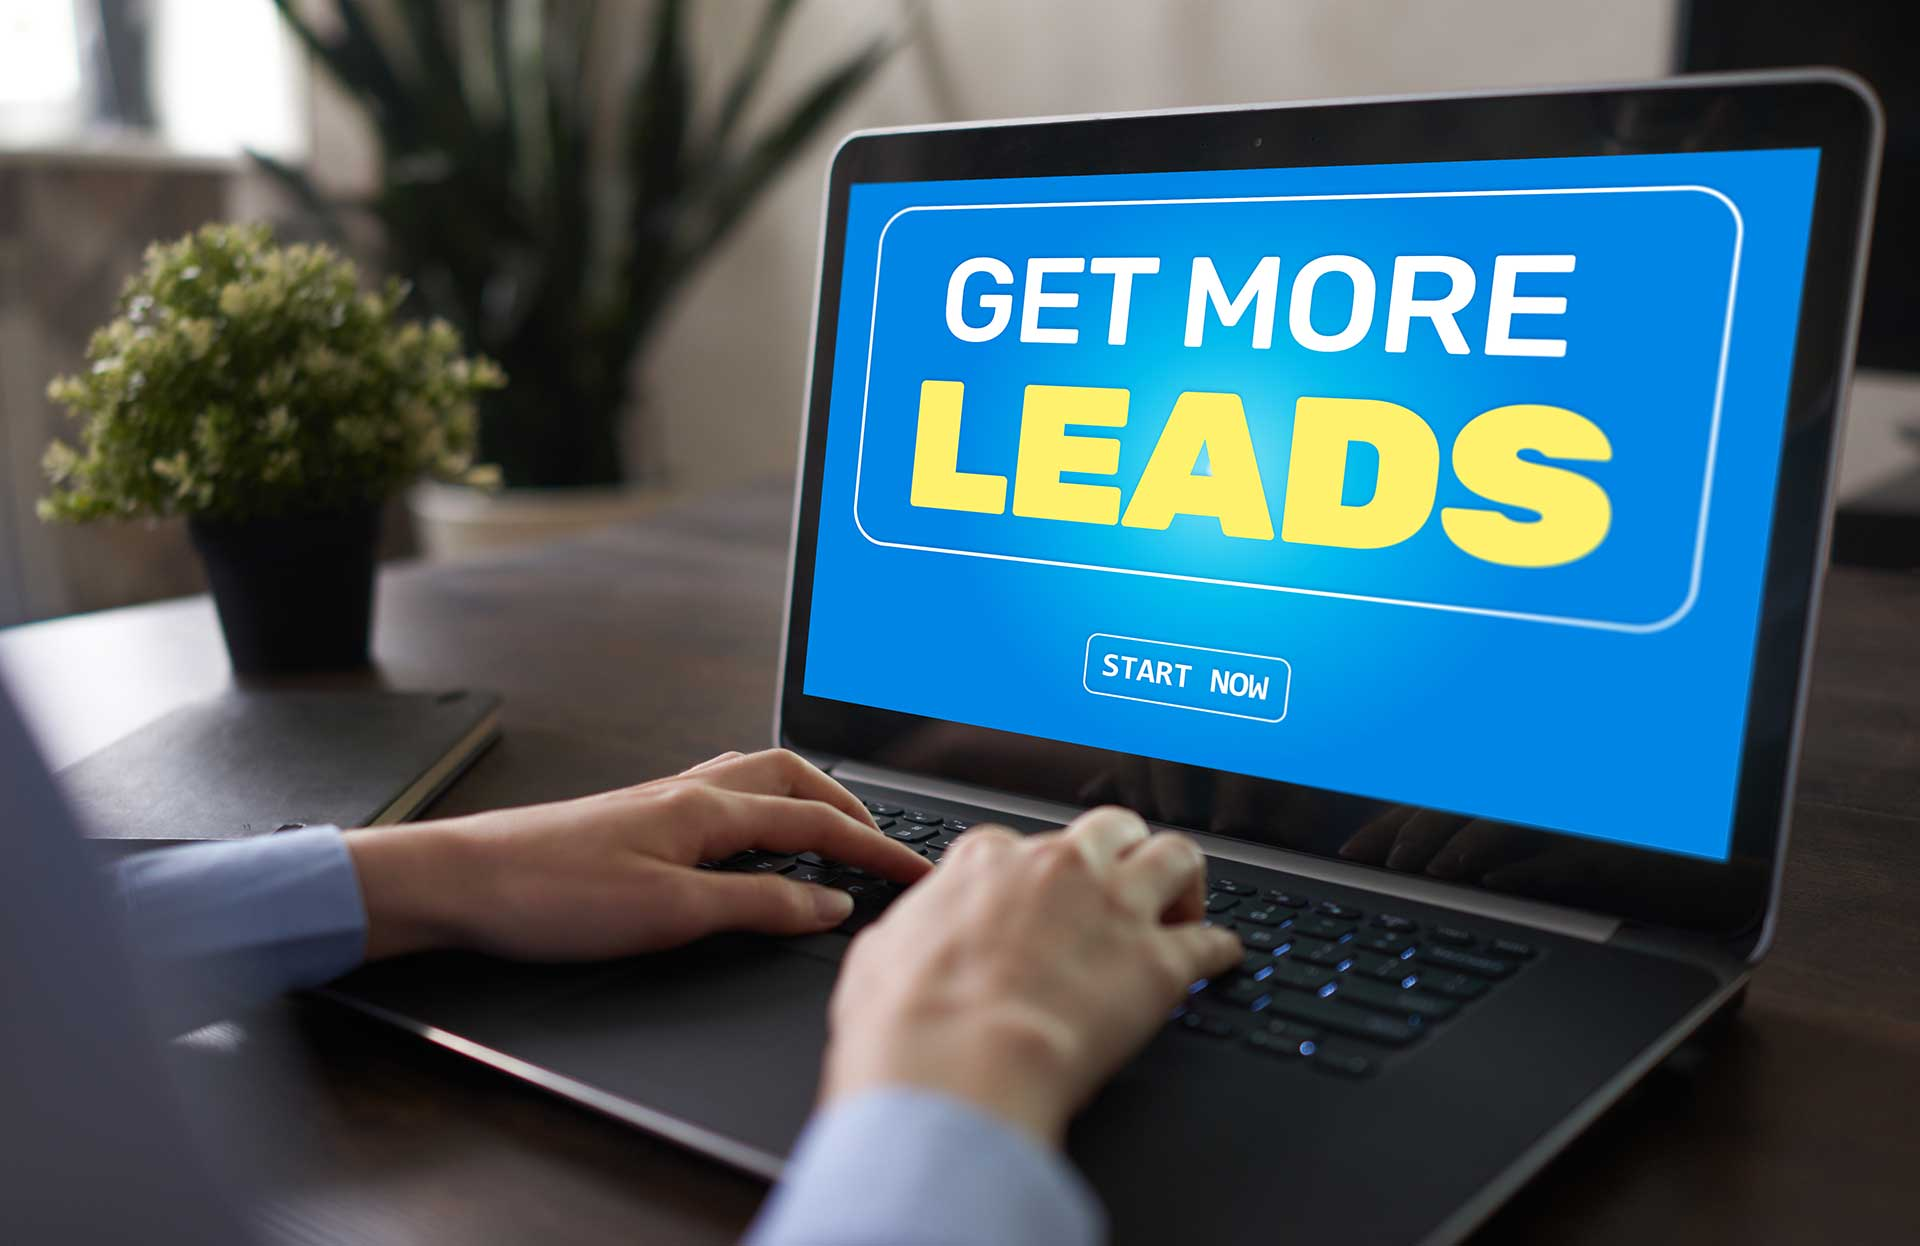 get-more-leads-1920